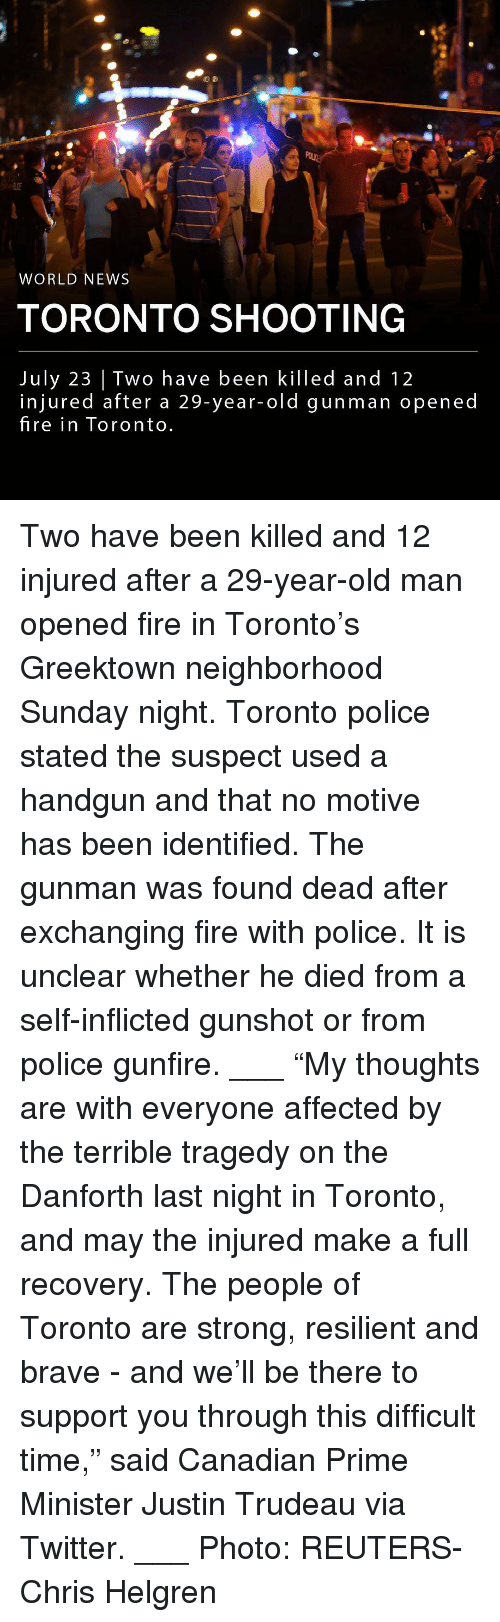 """Fire, Memes, and News: WORLD NEWS  TORONTO SHOOTING  July 23   Two have been killed and 12  injured after a 29-year-old gunman opened  fire in Toronto Two have been killed and 12 injured after a 29-year-old man opened fire in Toronto's Greektown neighborhood Sunday night. Toronto police stated the suspect used a handgun and that no motive has been identified. The gunman was found dead after exchanging fire with police. It is unclear whether he died from a self-inflicted gunshot or from police gunfire. ___ """"My thoughts are with everyone affected by the terrible tragedy on the Danforth last night in Toronto, and may the injured make a full recovery. The people of Toronto are strong, resilient and brave - and we'll be there to support you through this difficult time,"""" said Canadian Prime Minister Justin Trudeau via Twitter. ___ Photo: REUTERS-Chris Helgren"""